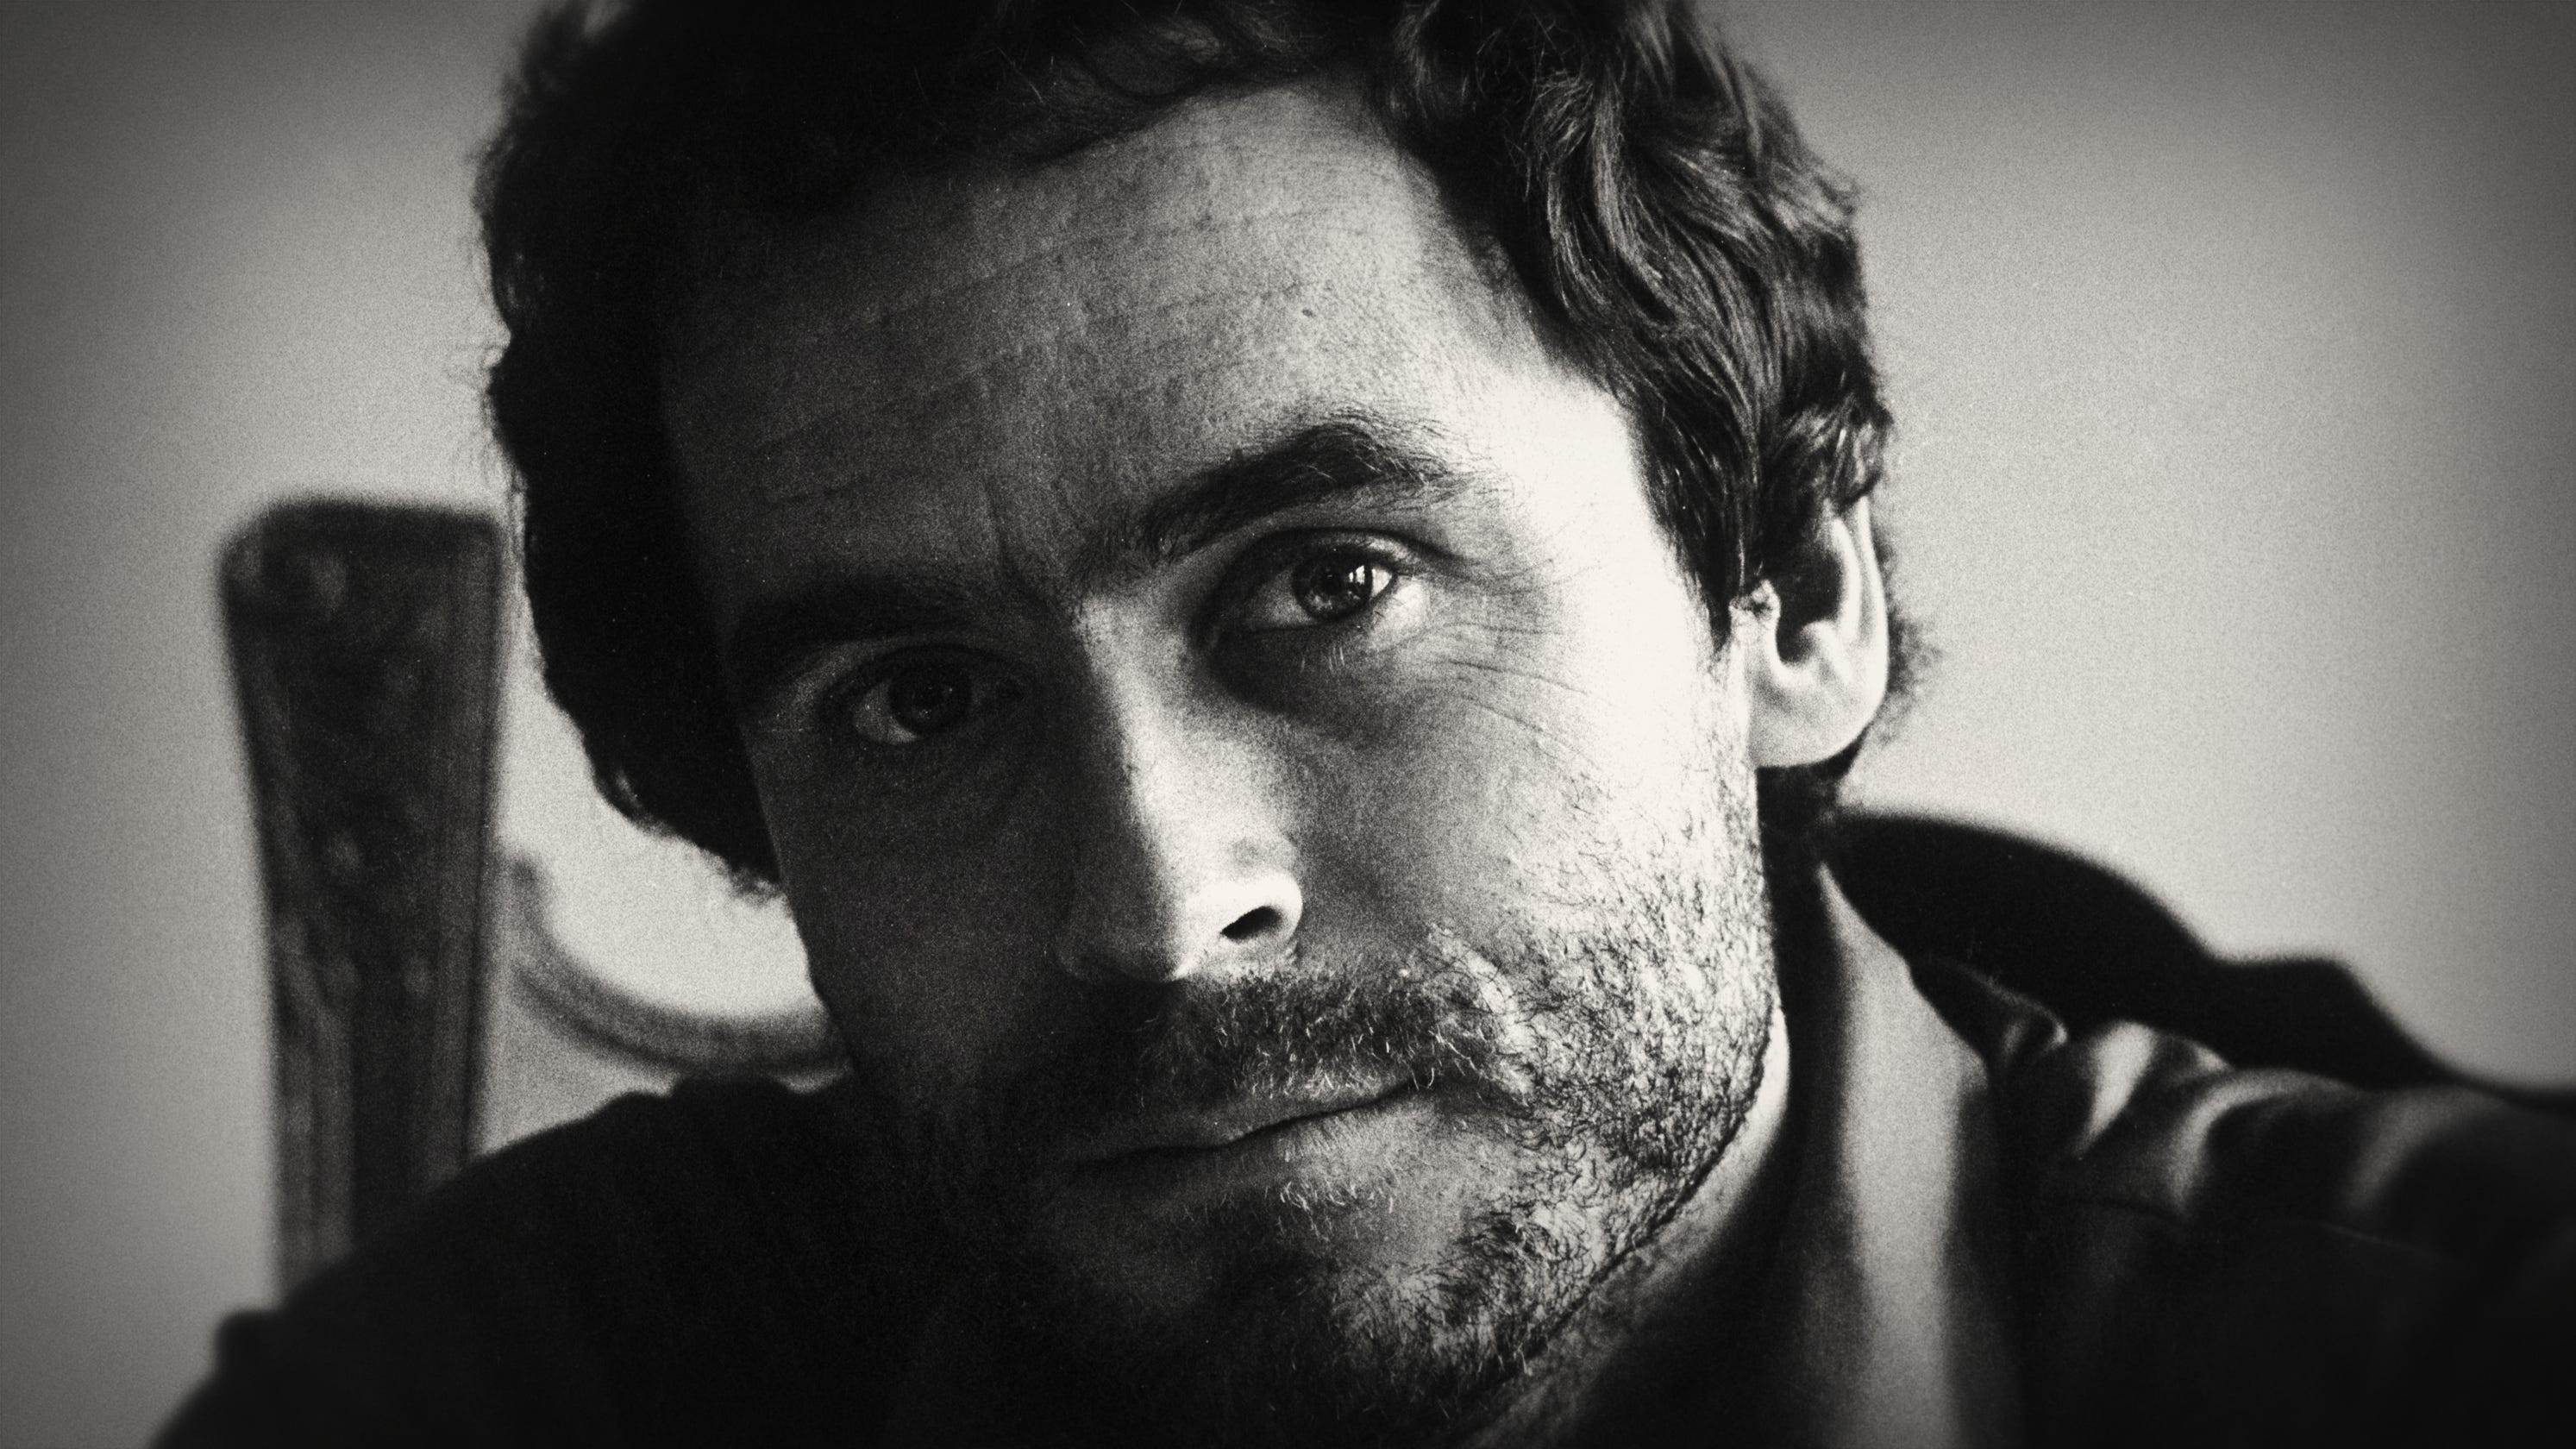 Ted Bundy: Father figures, childhood not focus of 'Extremely